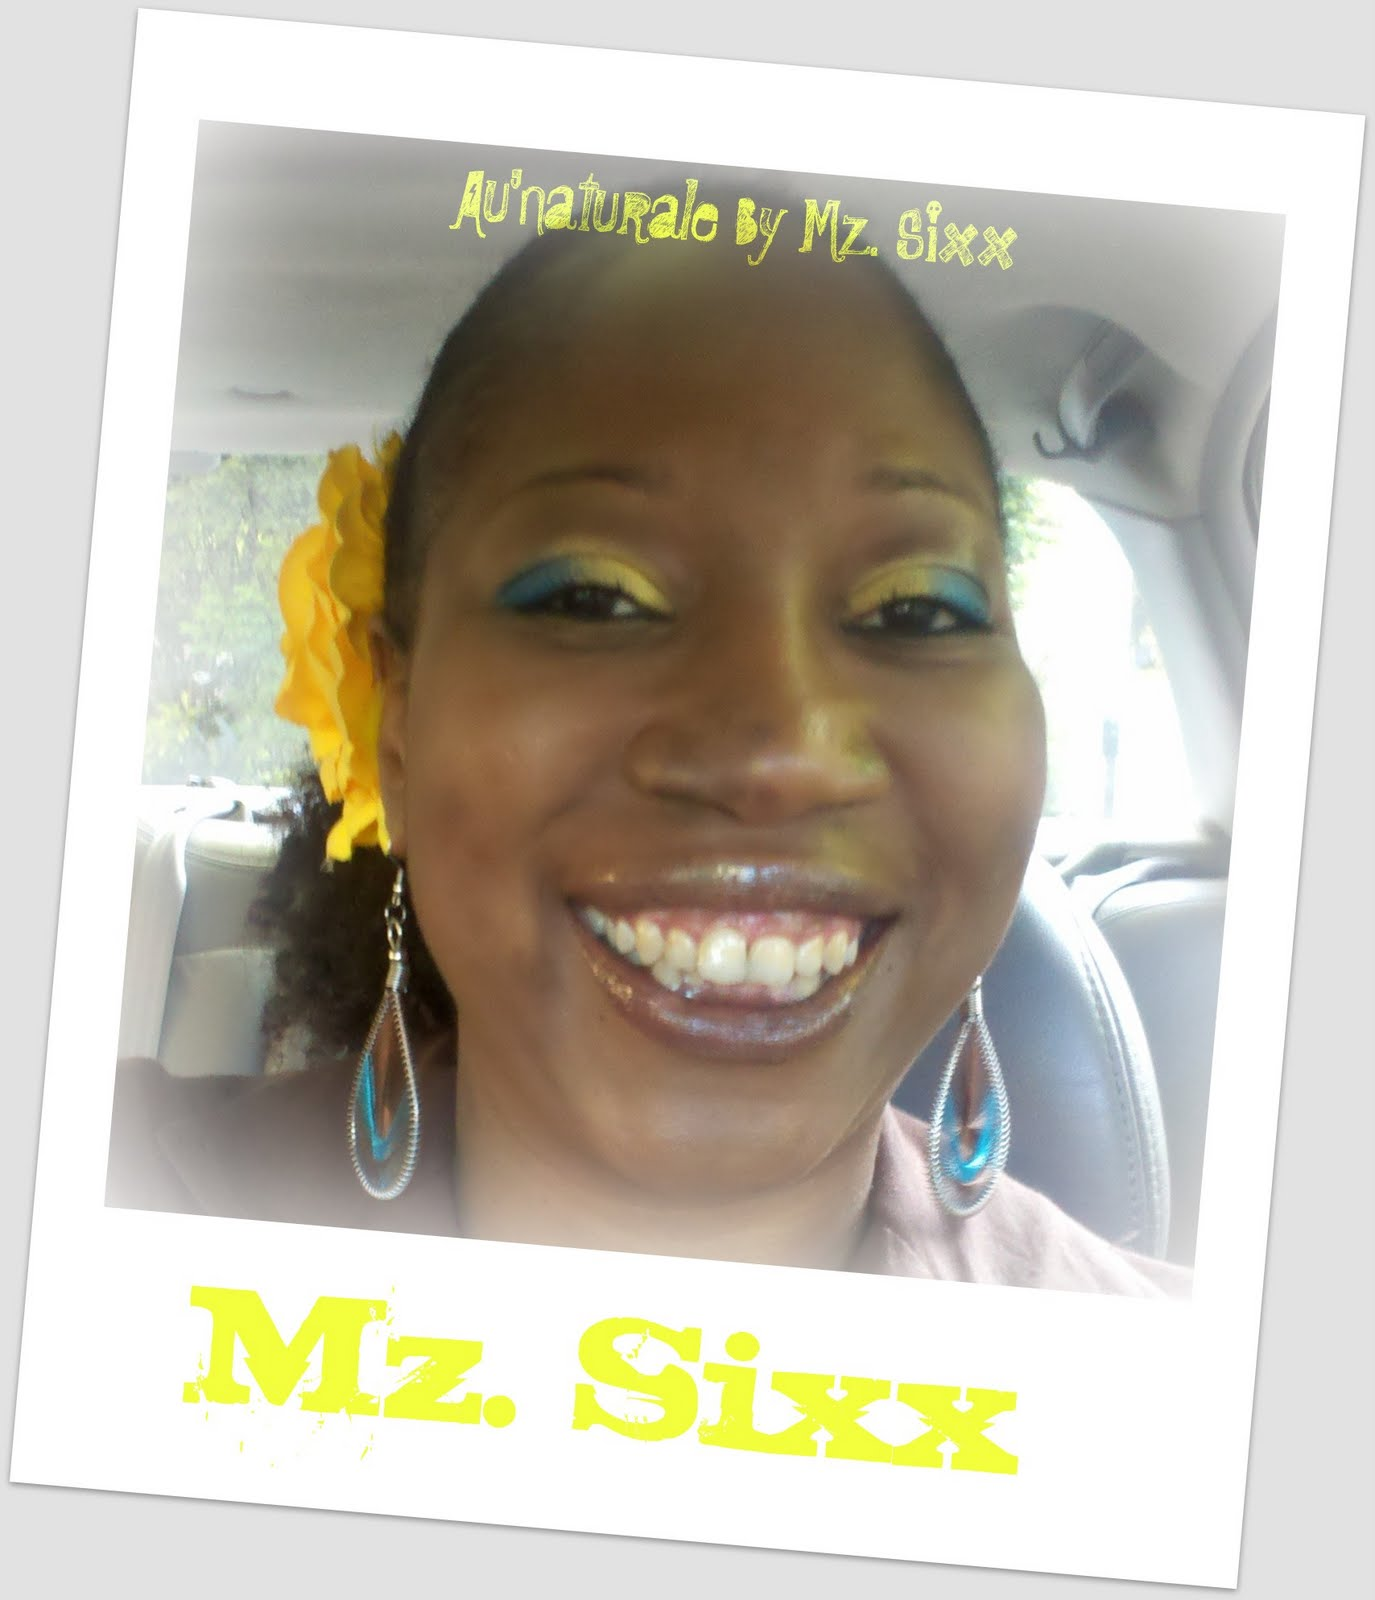 Au Naturale By Mz Sixx Product Review Target Brand Eye Make Up